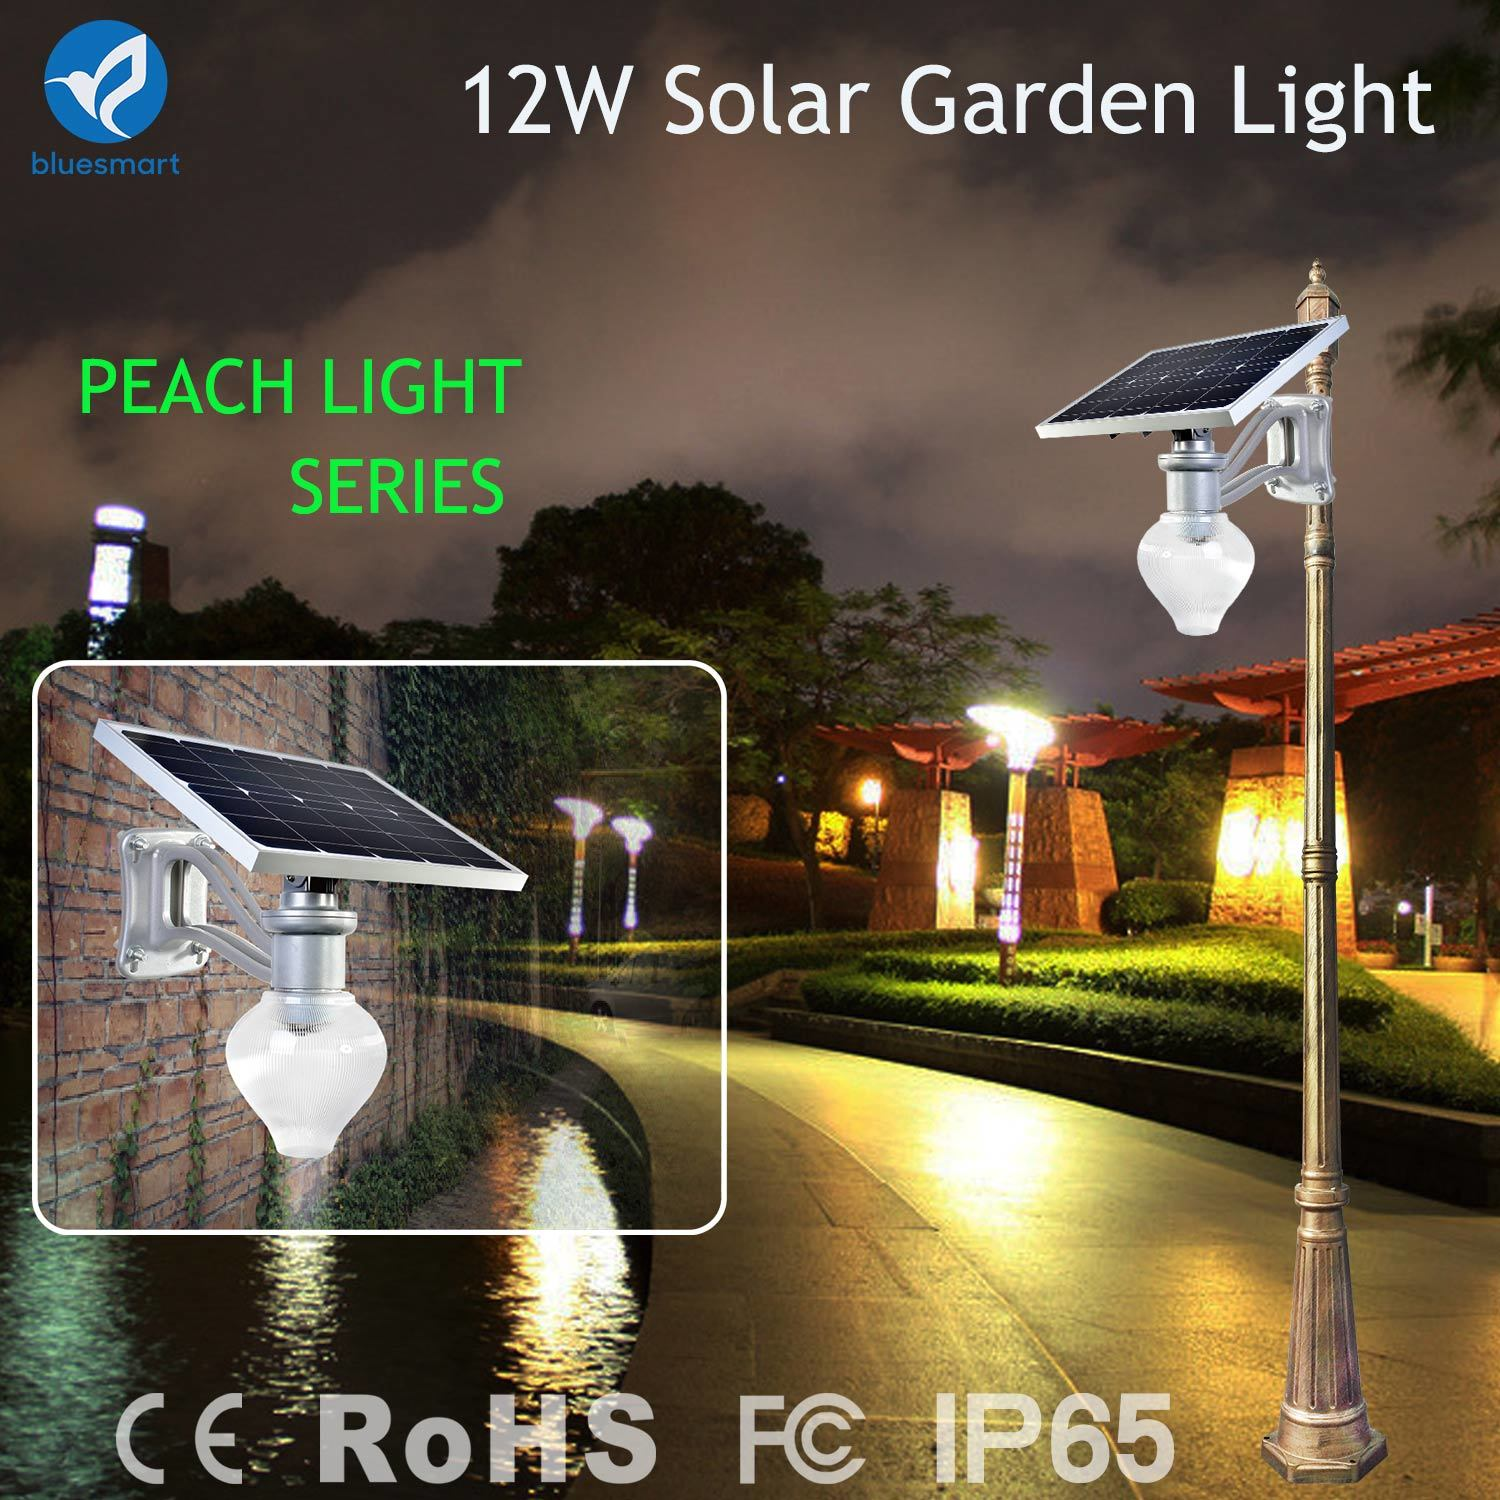 Bluesmart 12W All in One Solar LED Garden Street Lamp pictures & photos